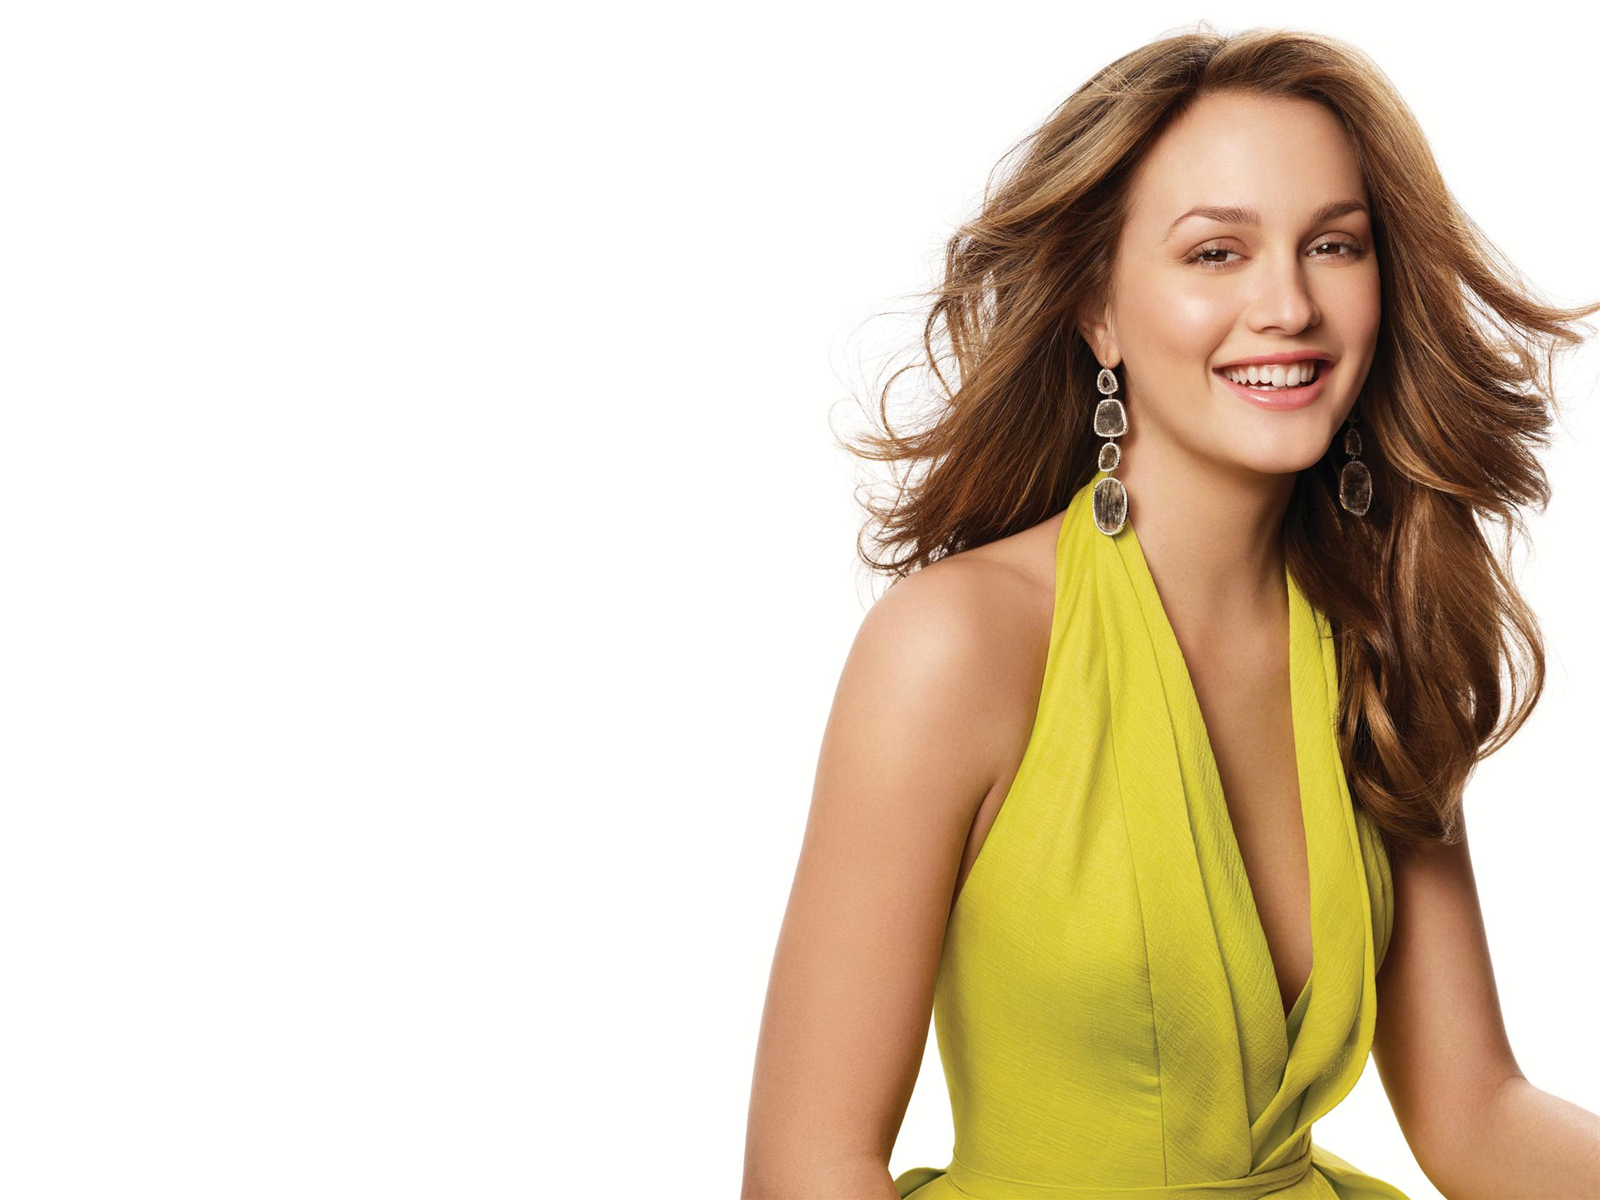 Leighton Meester Beautiful Actress Wallpapers HD Wallpapers 1600x1200